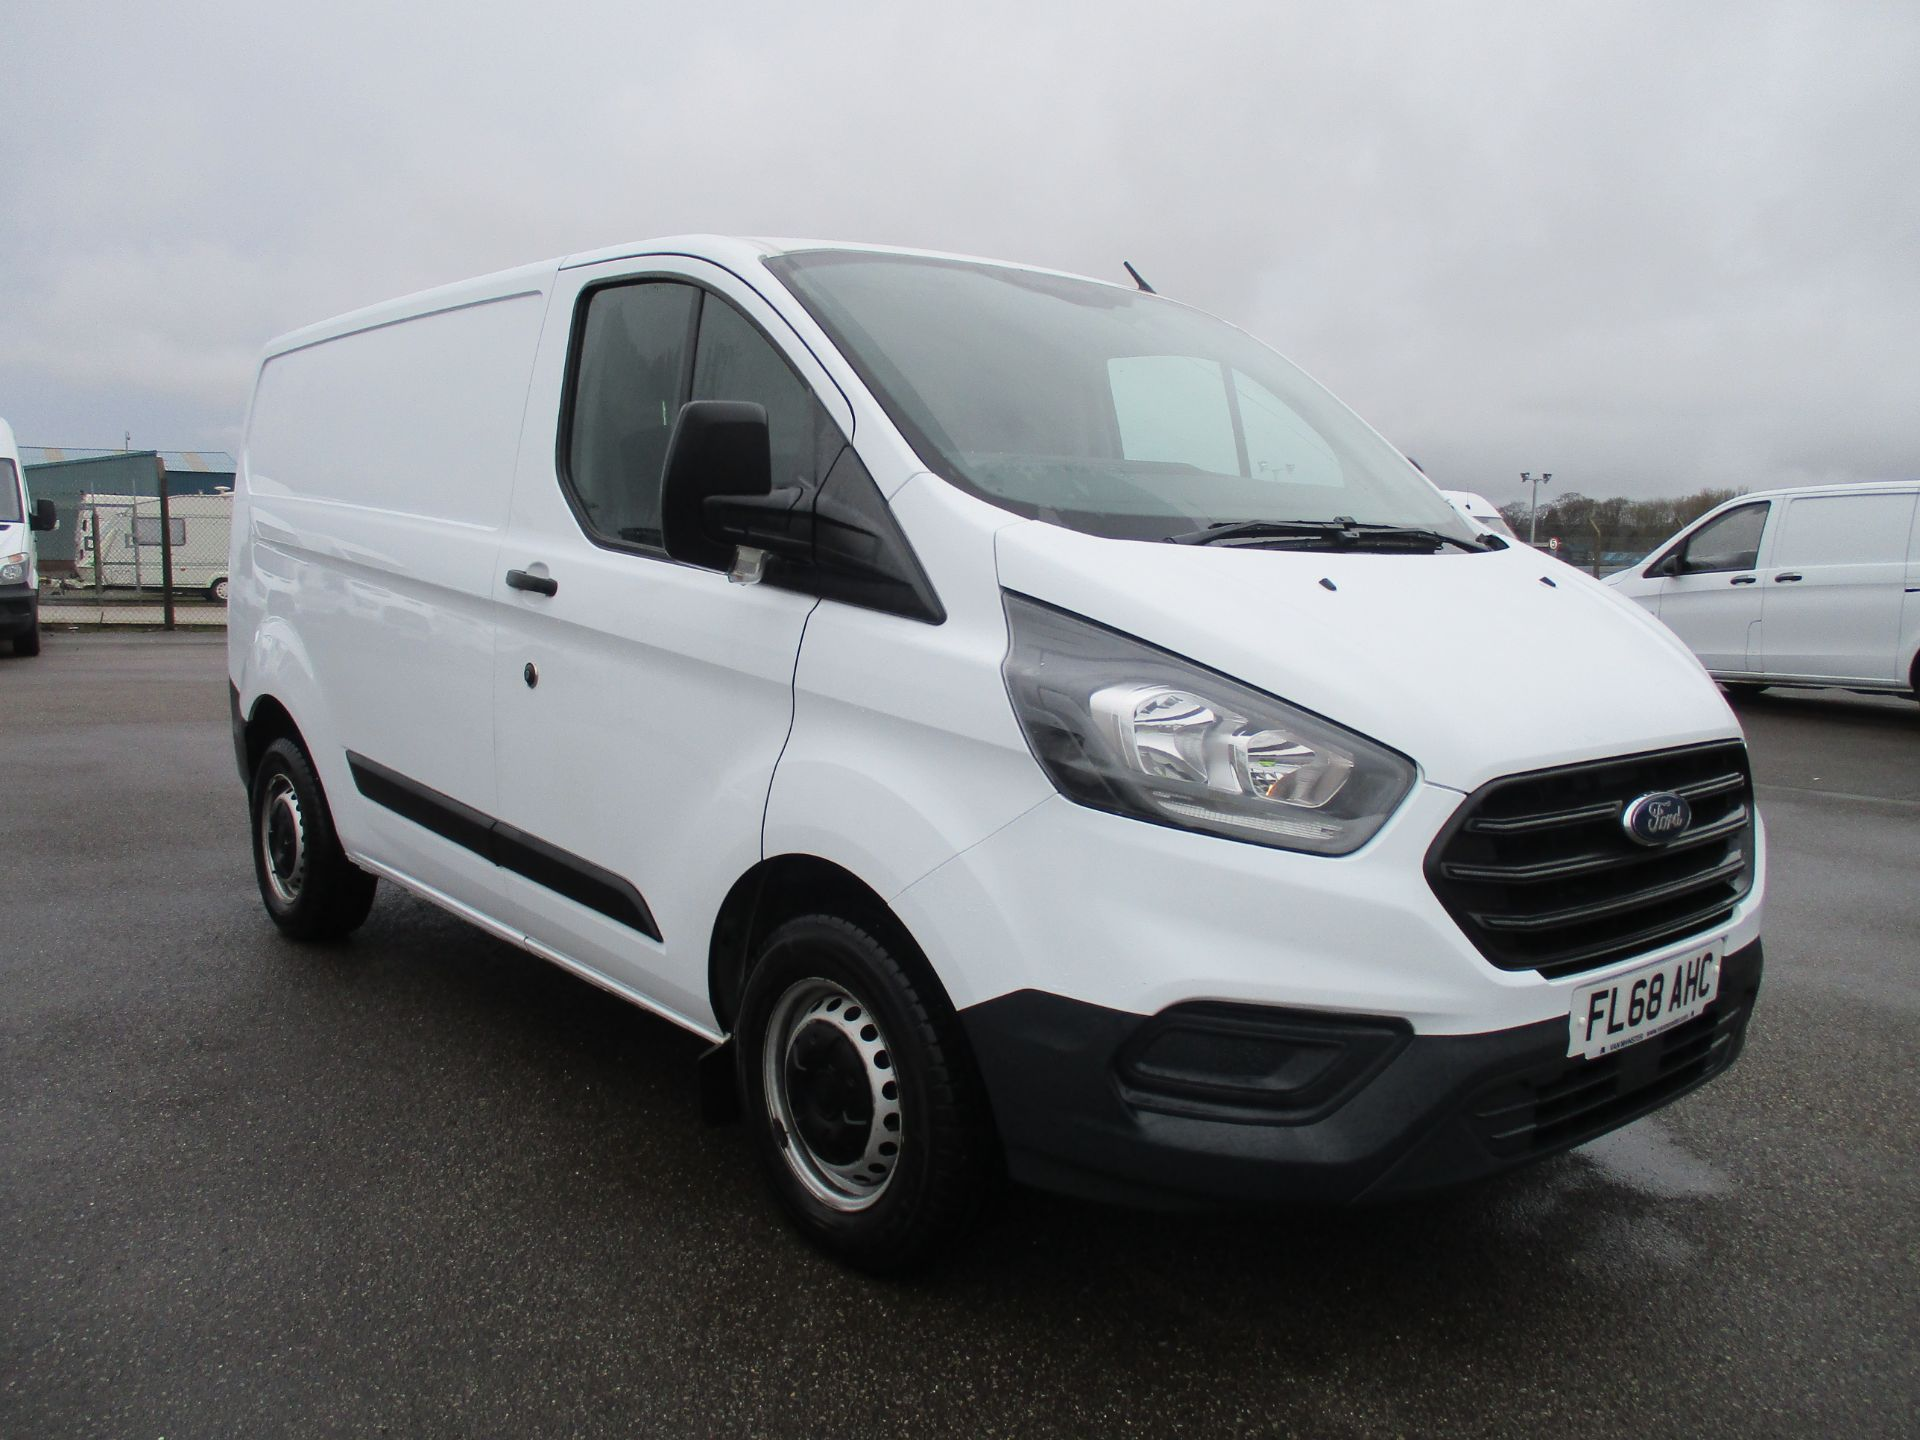 2018 Ford Transit Custom 300 L1 DIESEL FWD 2.0 TDCI 105PS LOW ROOF VAN EURO 6 (FL68AHC)